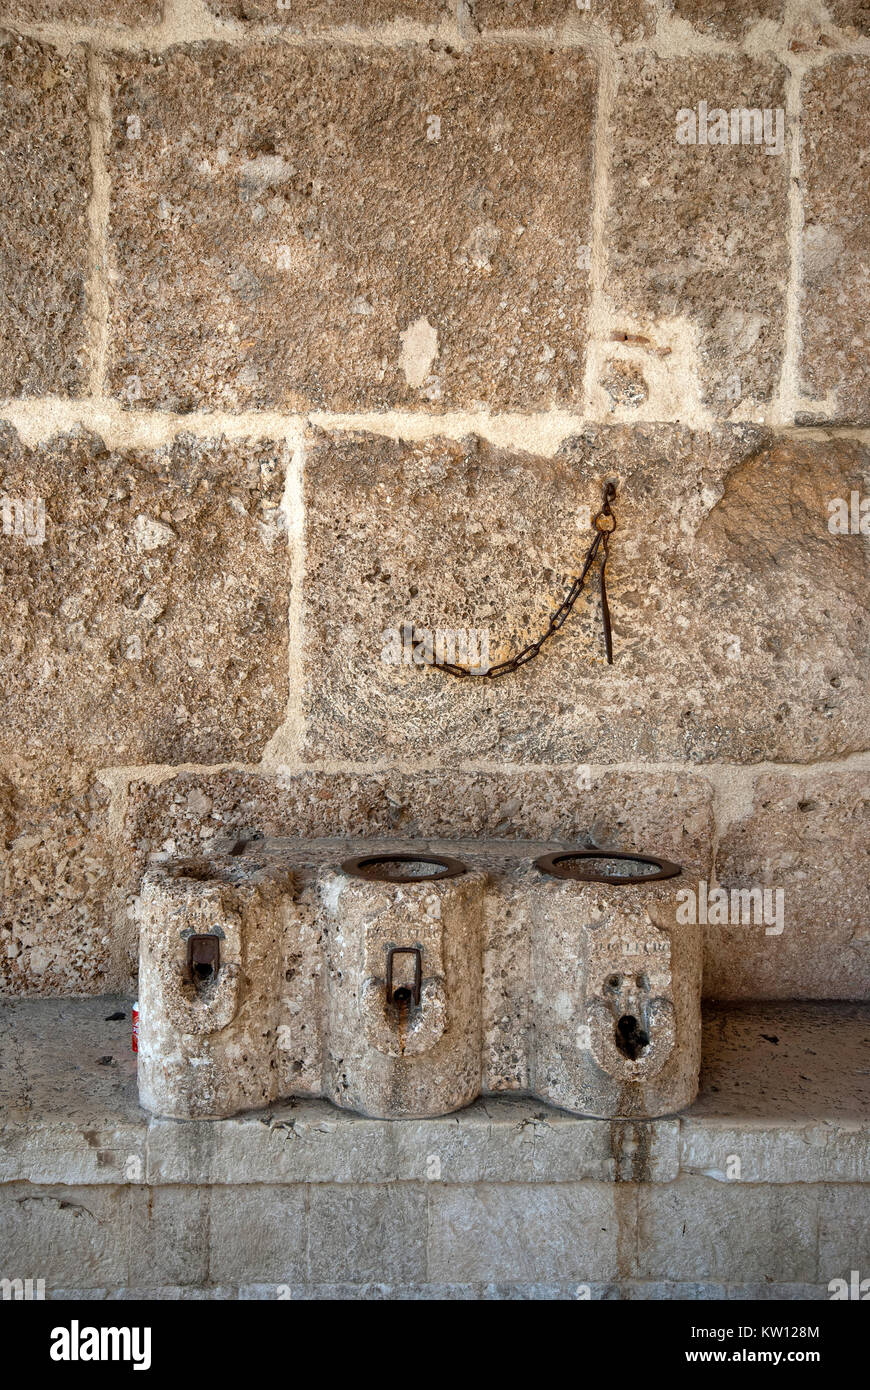 Stone containers known as 'measures' in the old covered market of cereals, known as Porch of Measures, Norcia - Stock Image